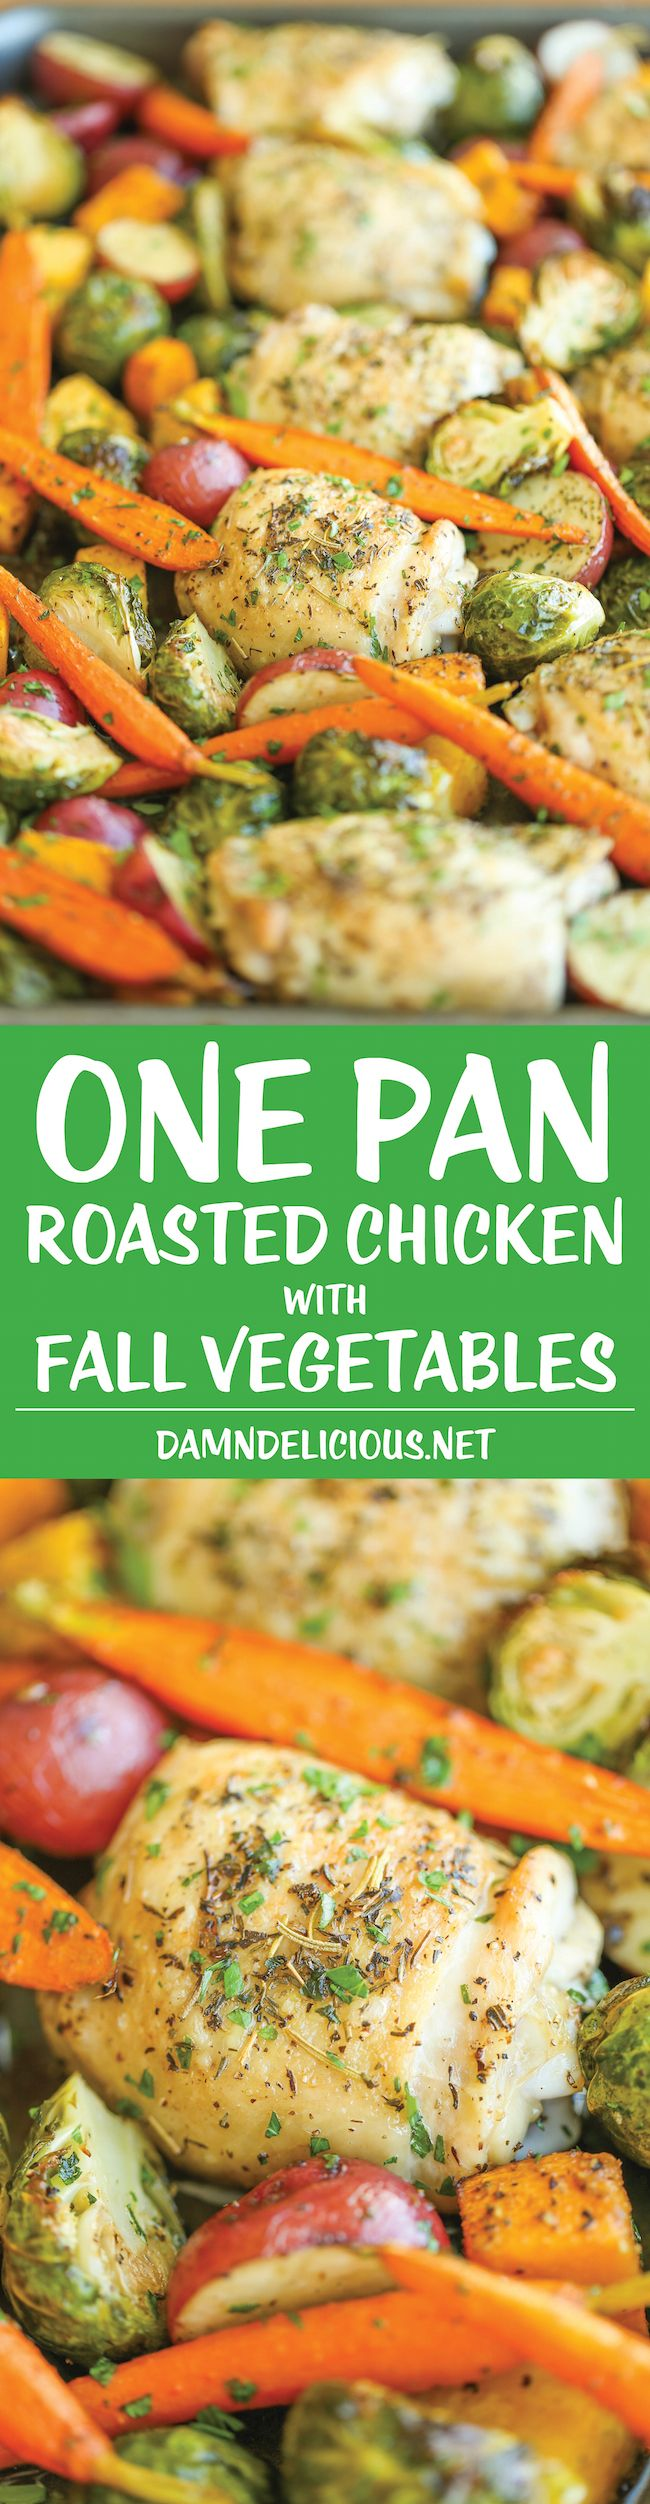 ... Chicken with Fall Vegetables | Recipe | The o'jays, Vegetables and